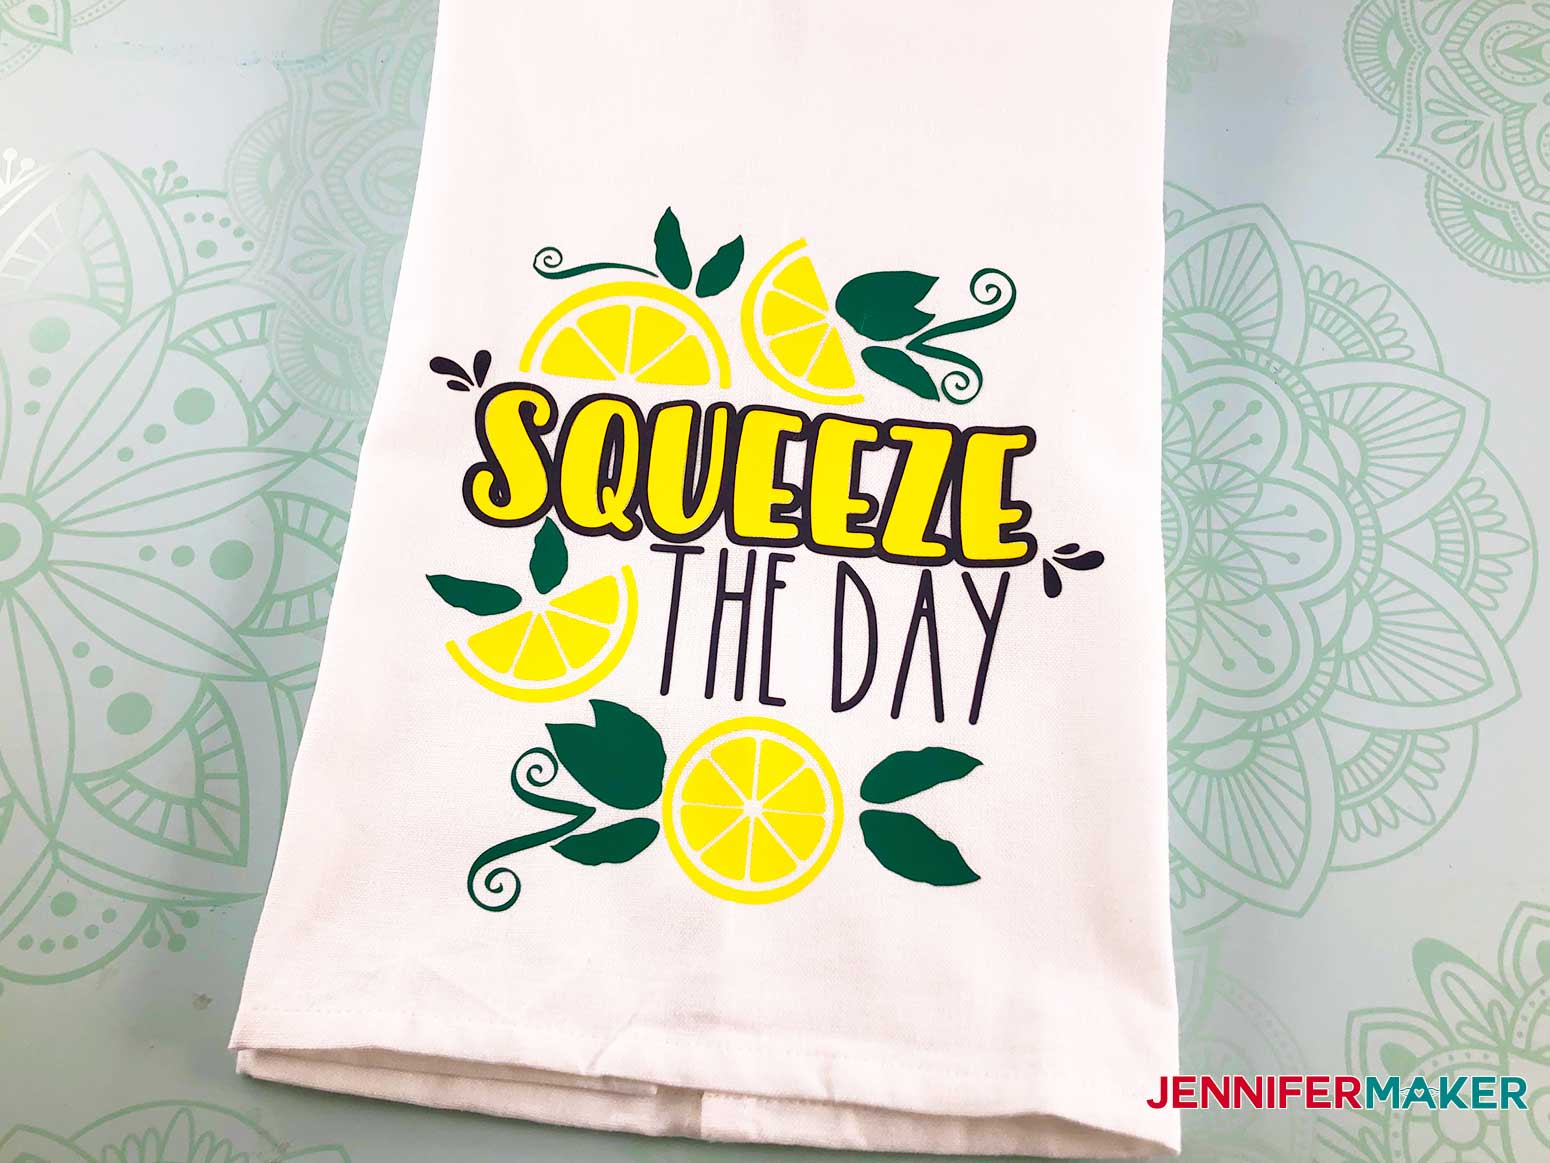 Squeeze the day finished towel on my decorative hand towel